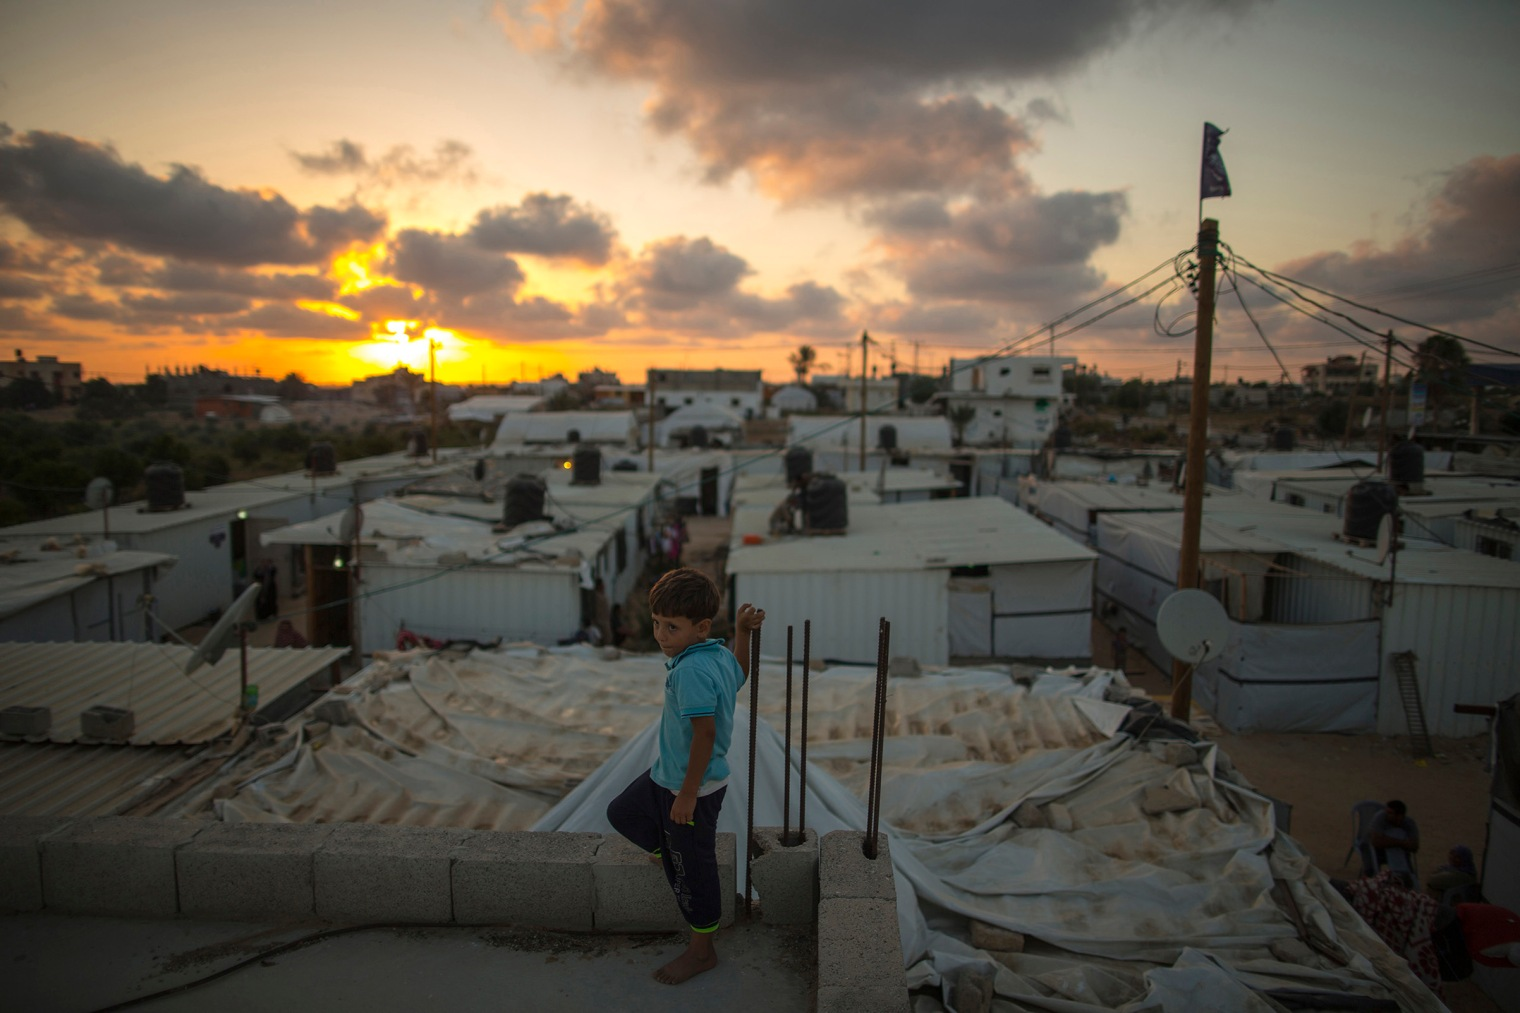 General view for the Cravans community in Khuzaa, east of Khan Yunis, in the southern Gaza Strip where people live in a critical situation since they were displaced after the Israeli military offensive over Gaza last summer on July 6, 2015.